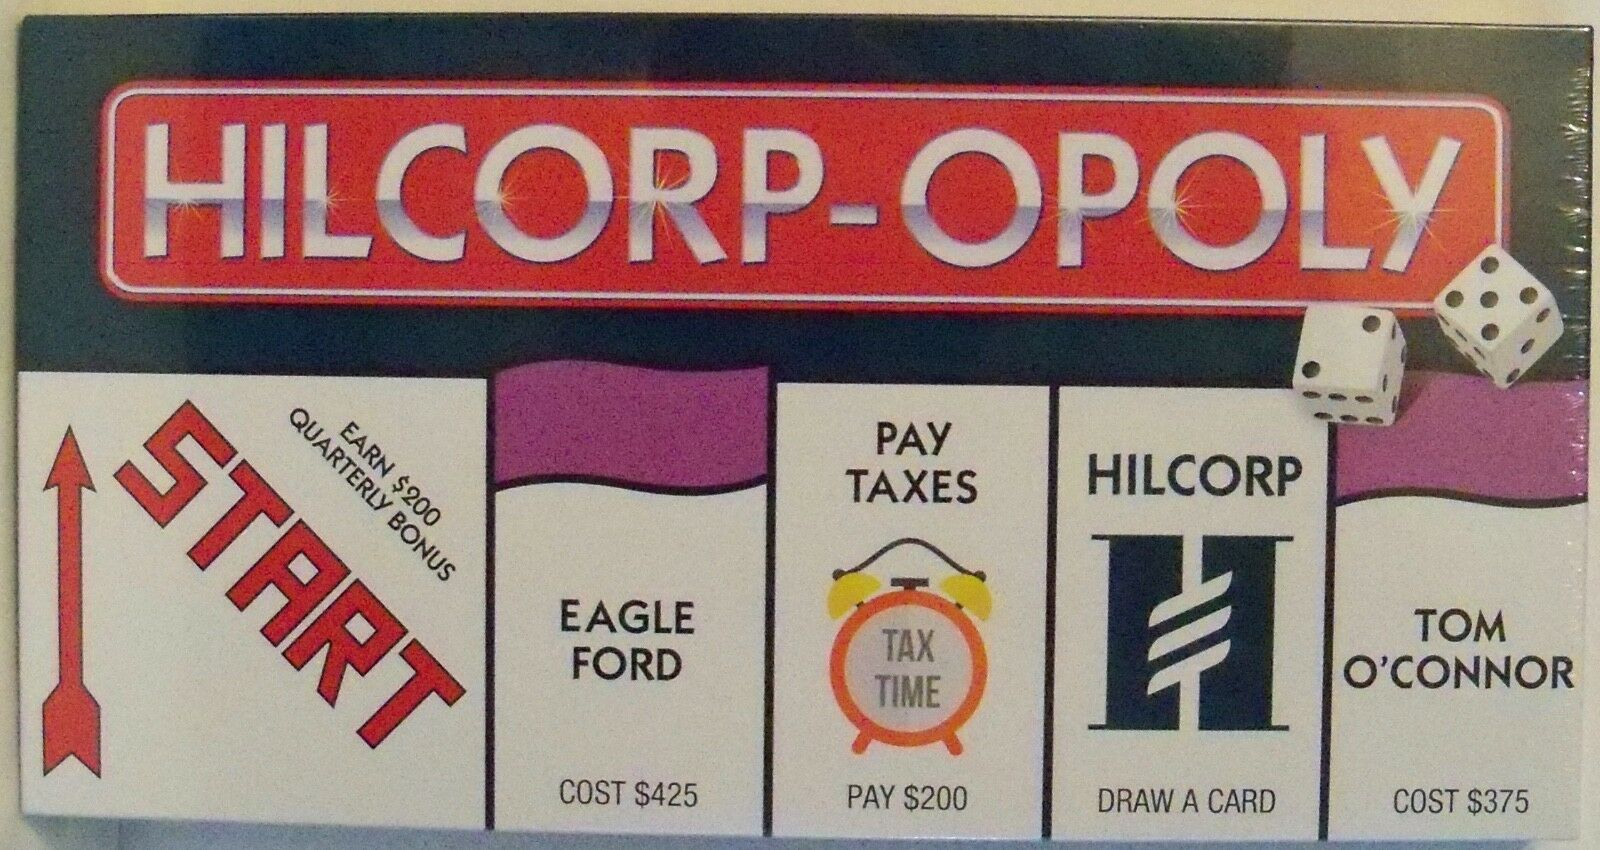 Hilcorp-Opoly - Board Game